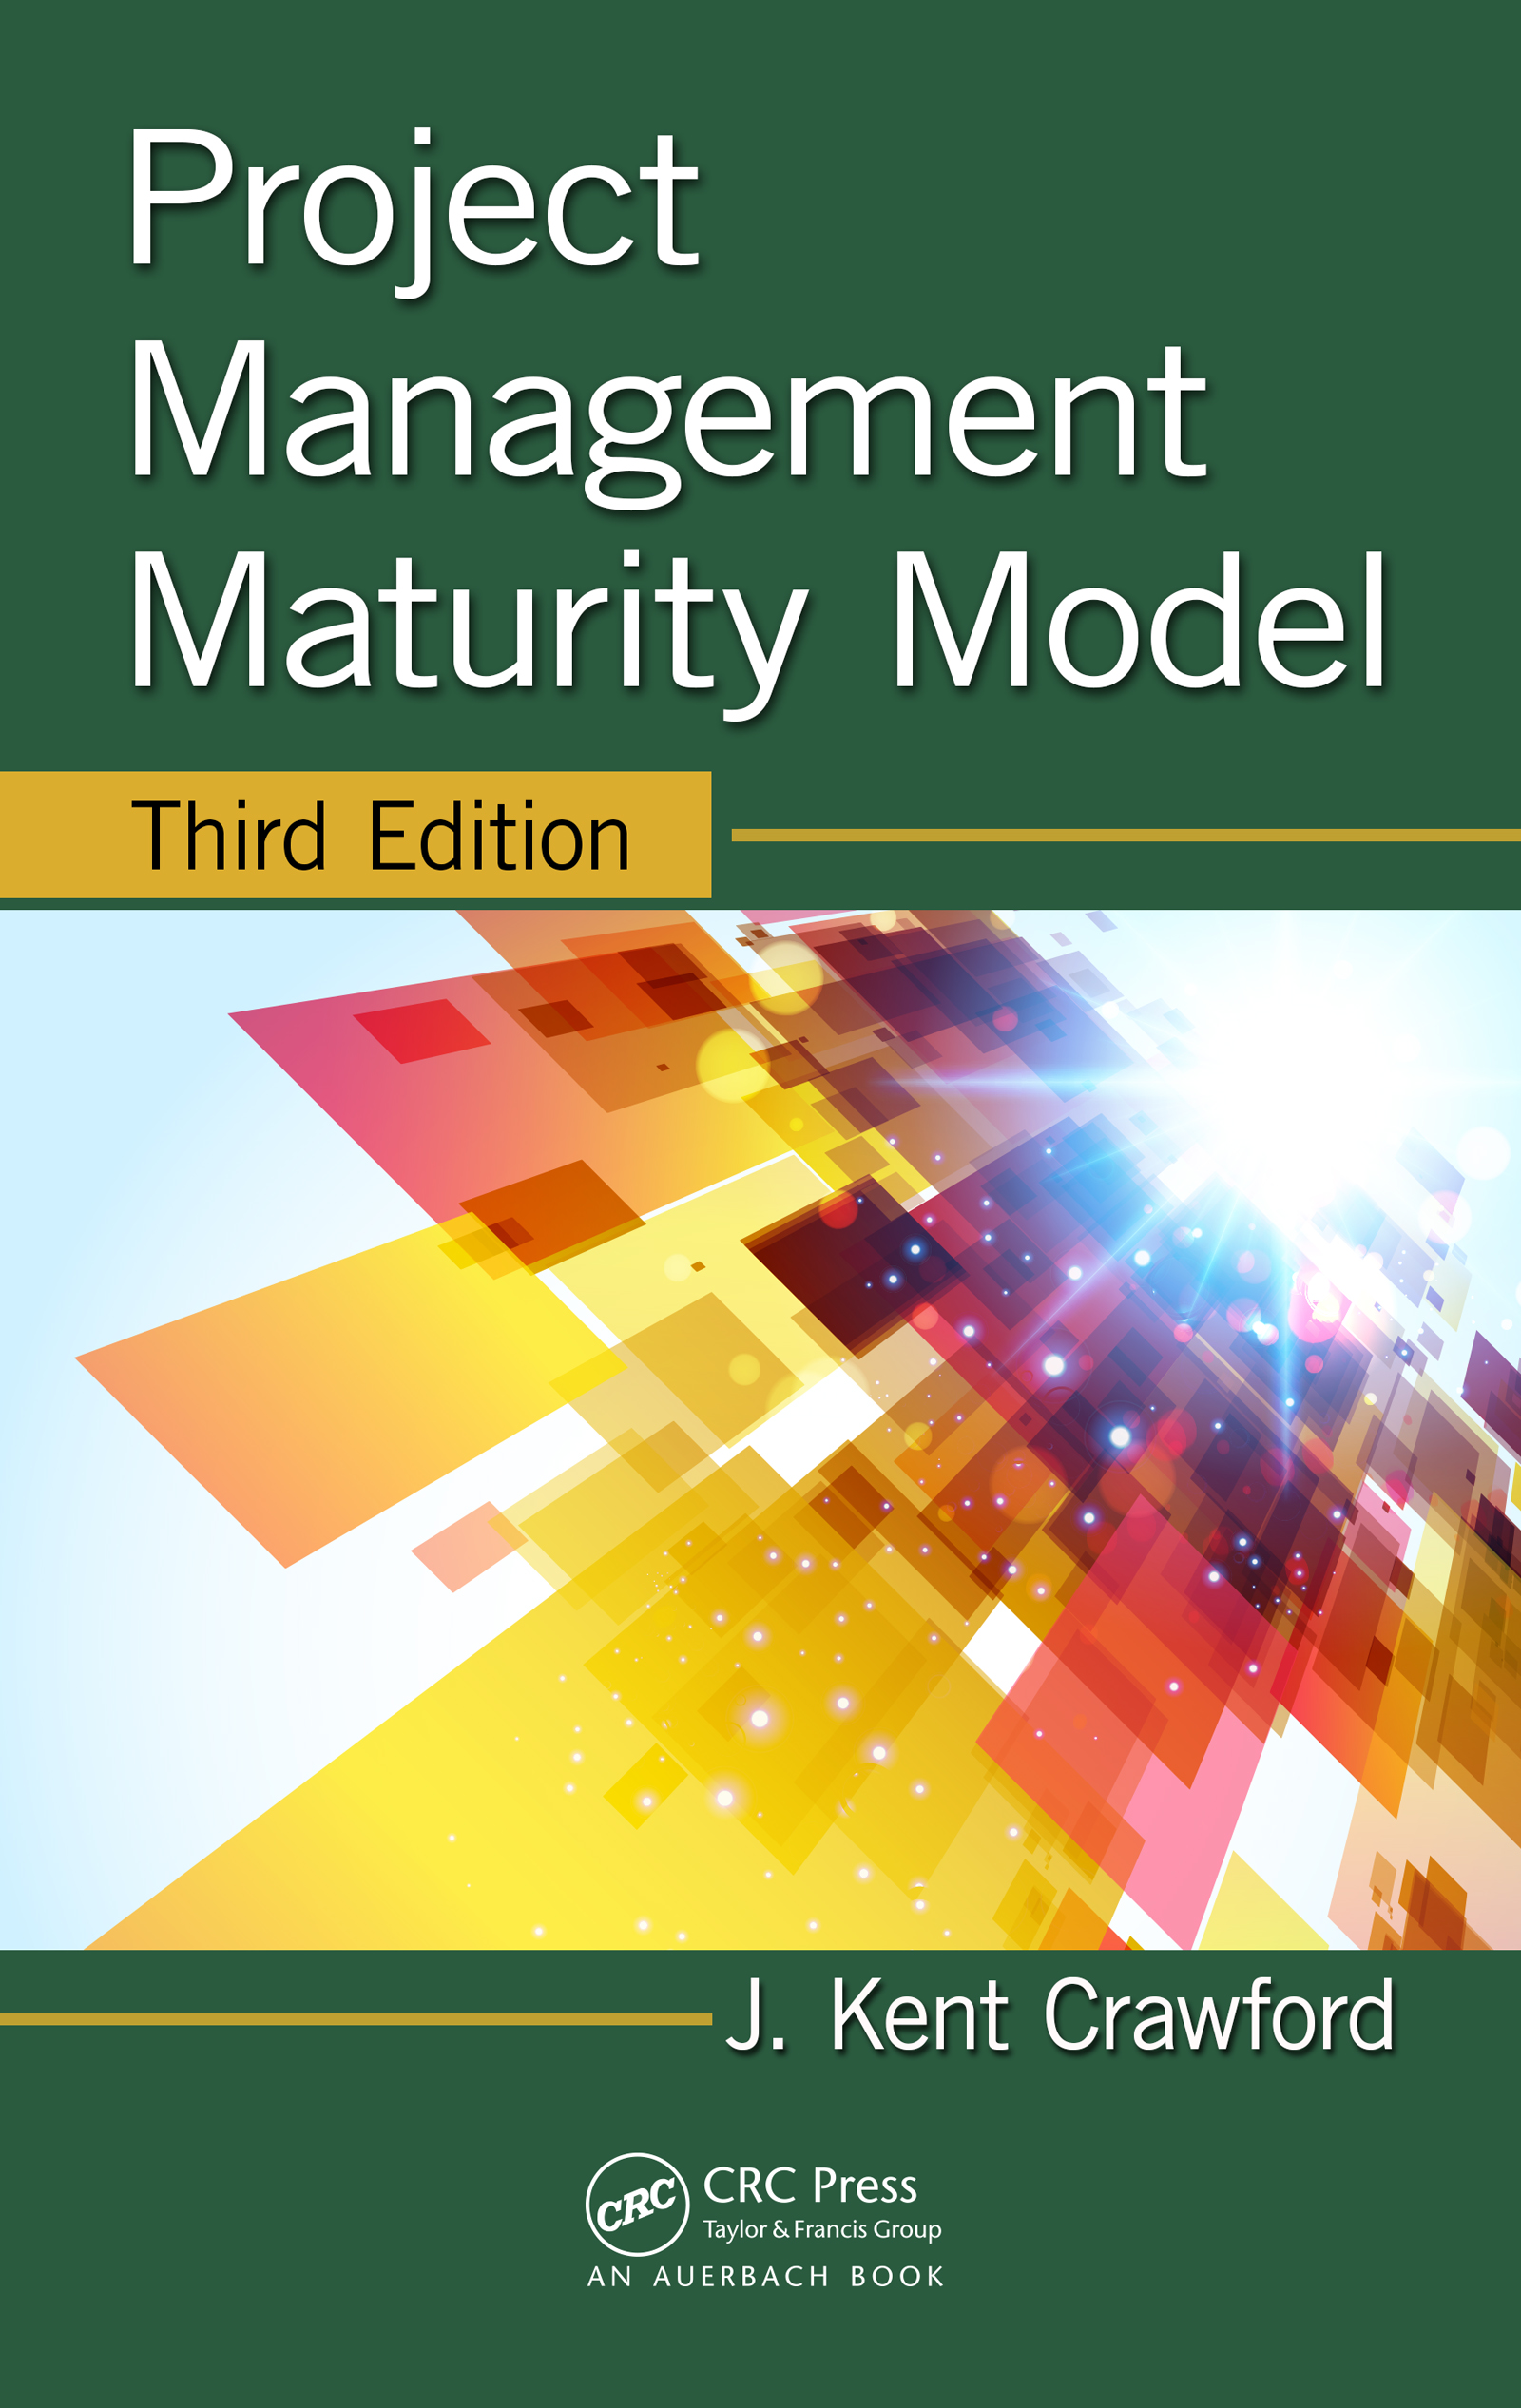 Download Ebook Project Management Maturity Model (3rd ed.) by J. Kent Crawford Pdf